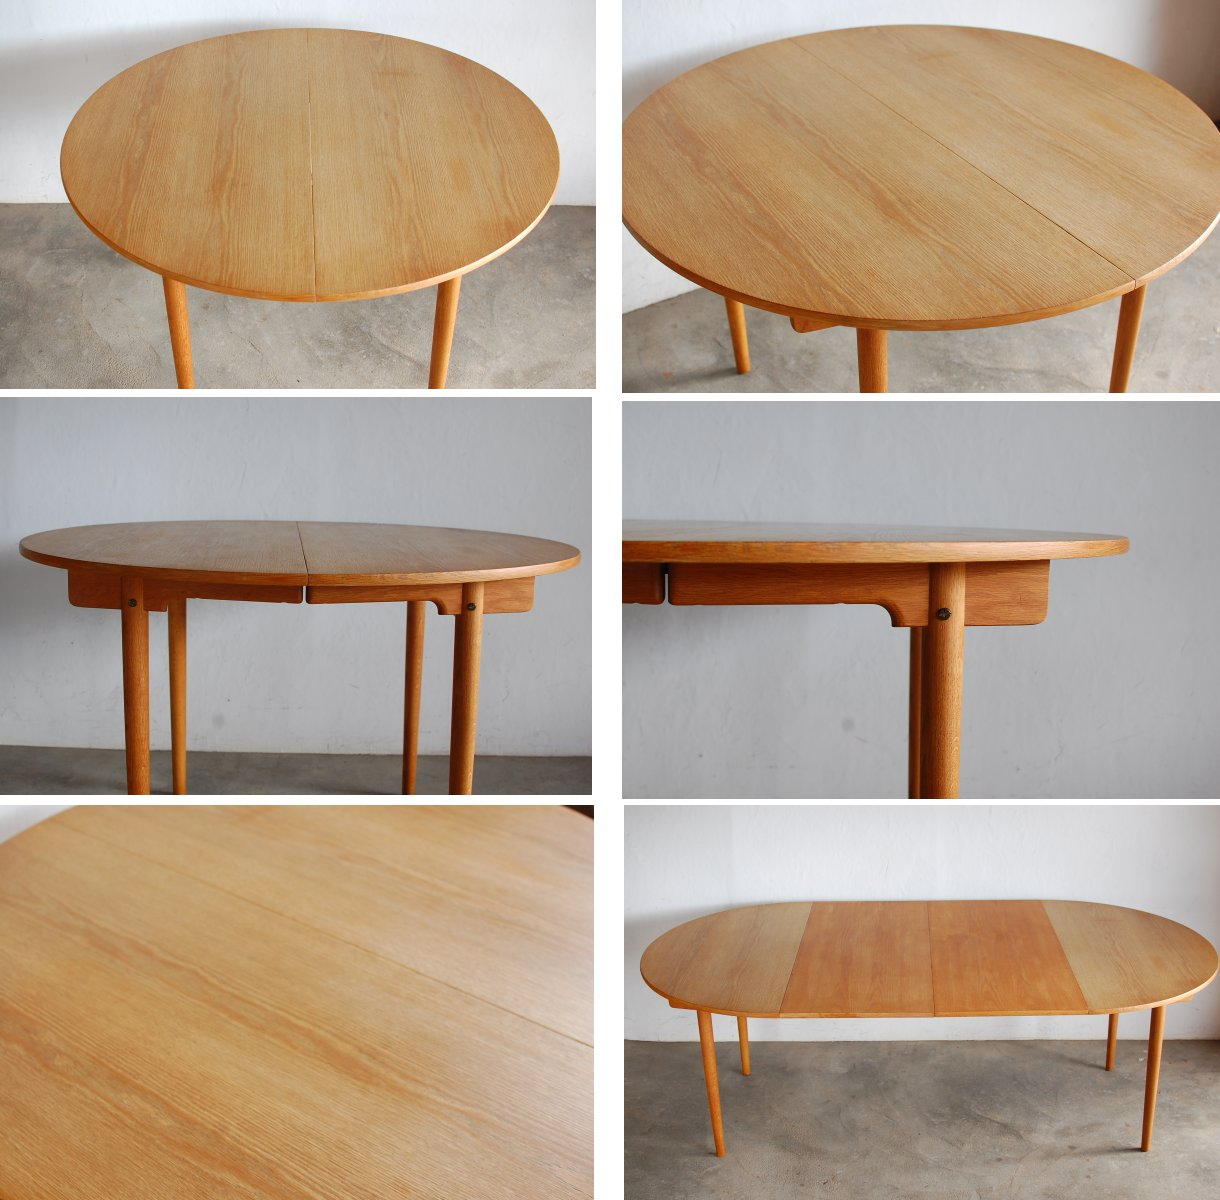 fabmod rakuten global market hans j wegner oak dining table